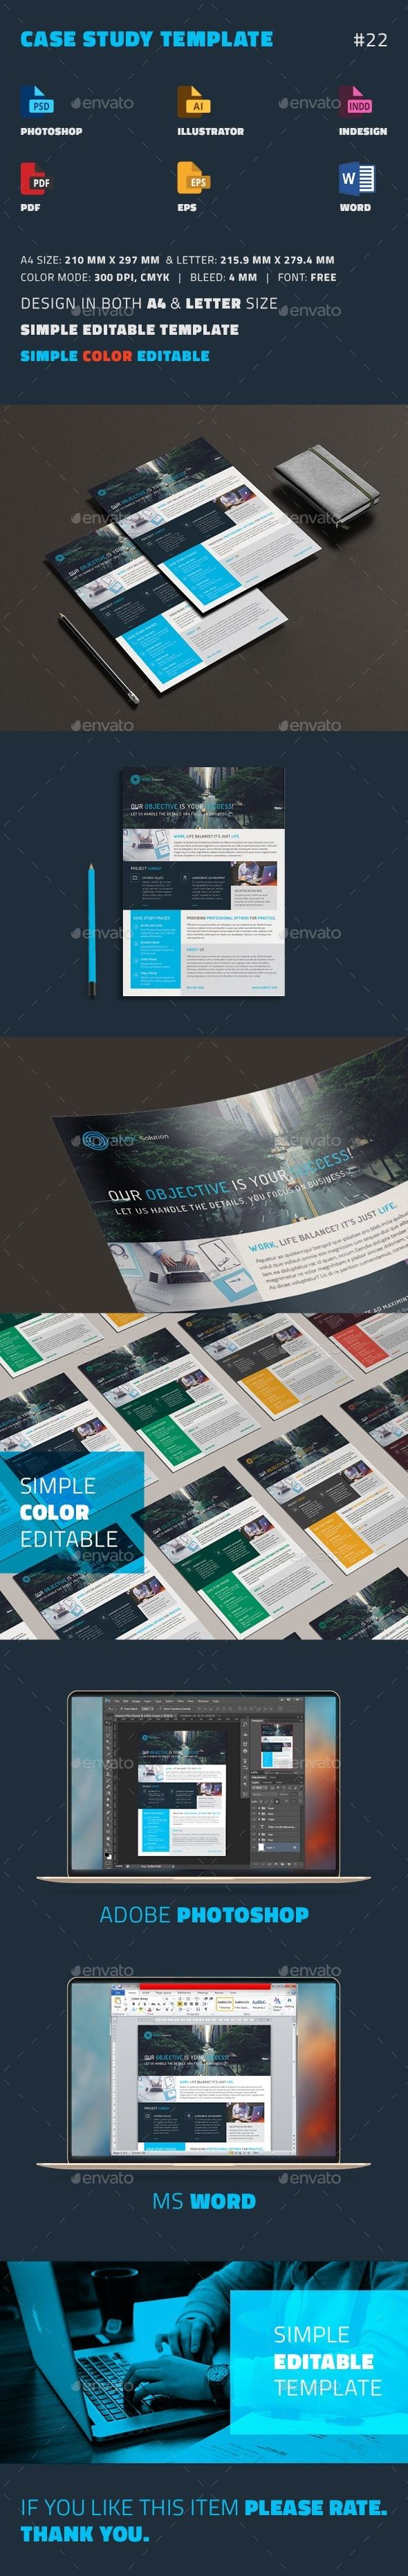 Best Newsletter Template Images On   Newsletter